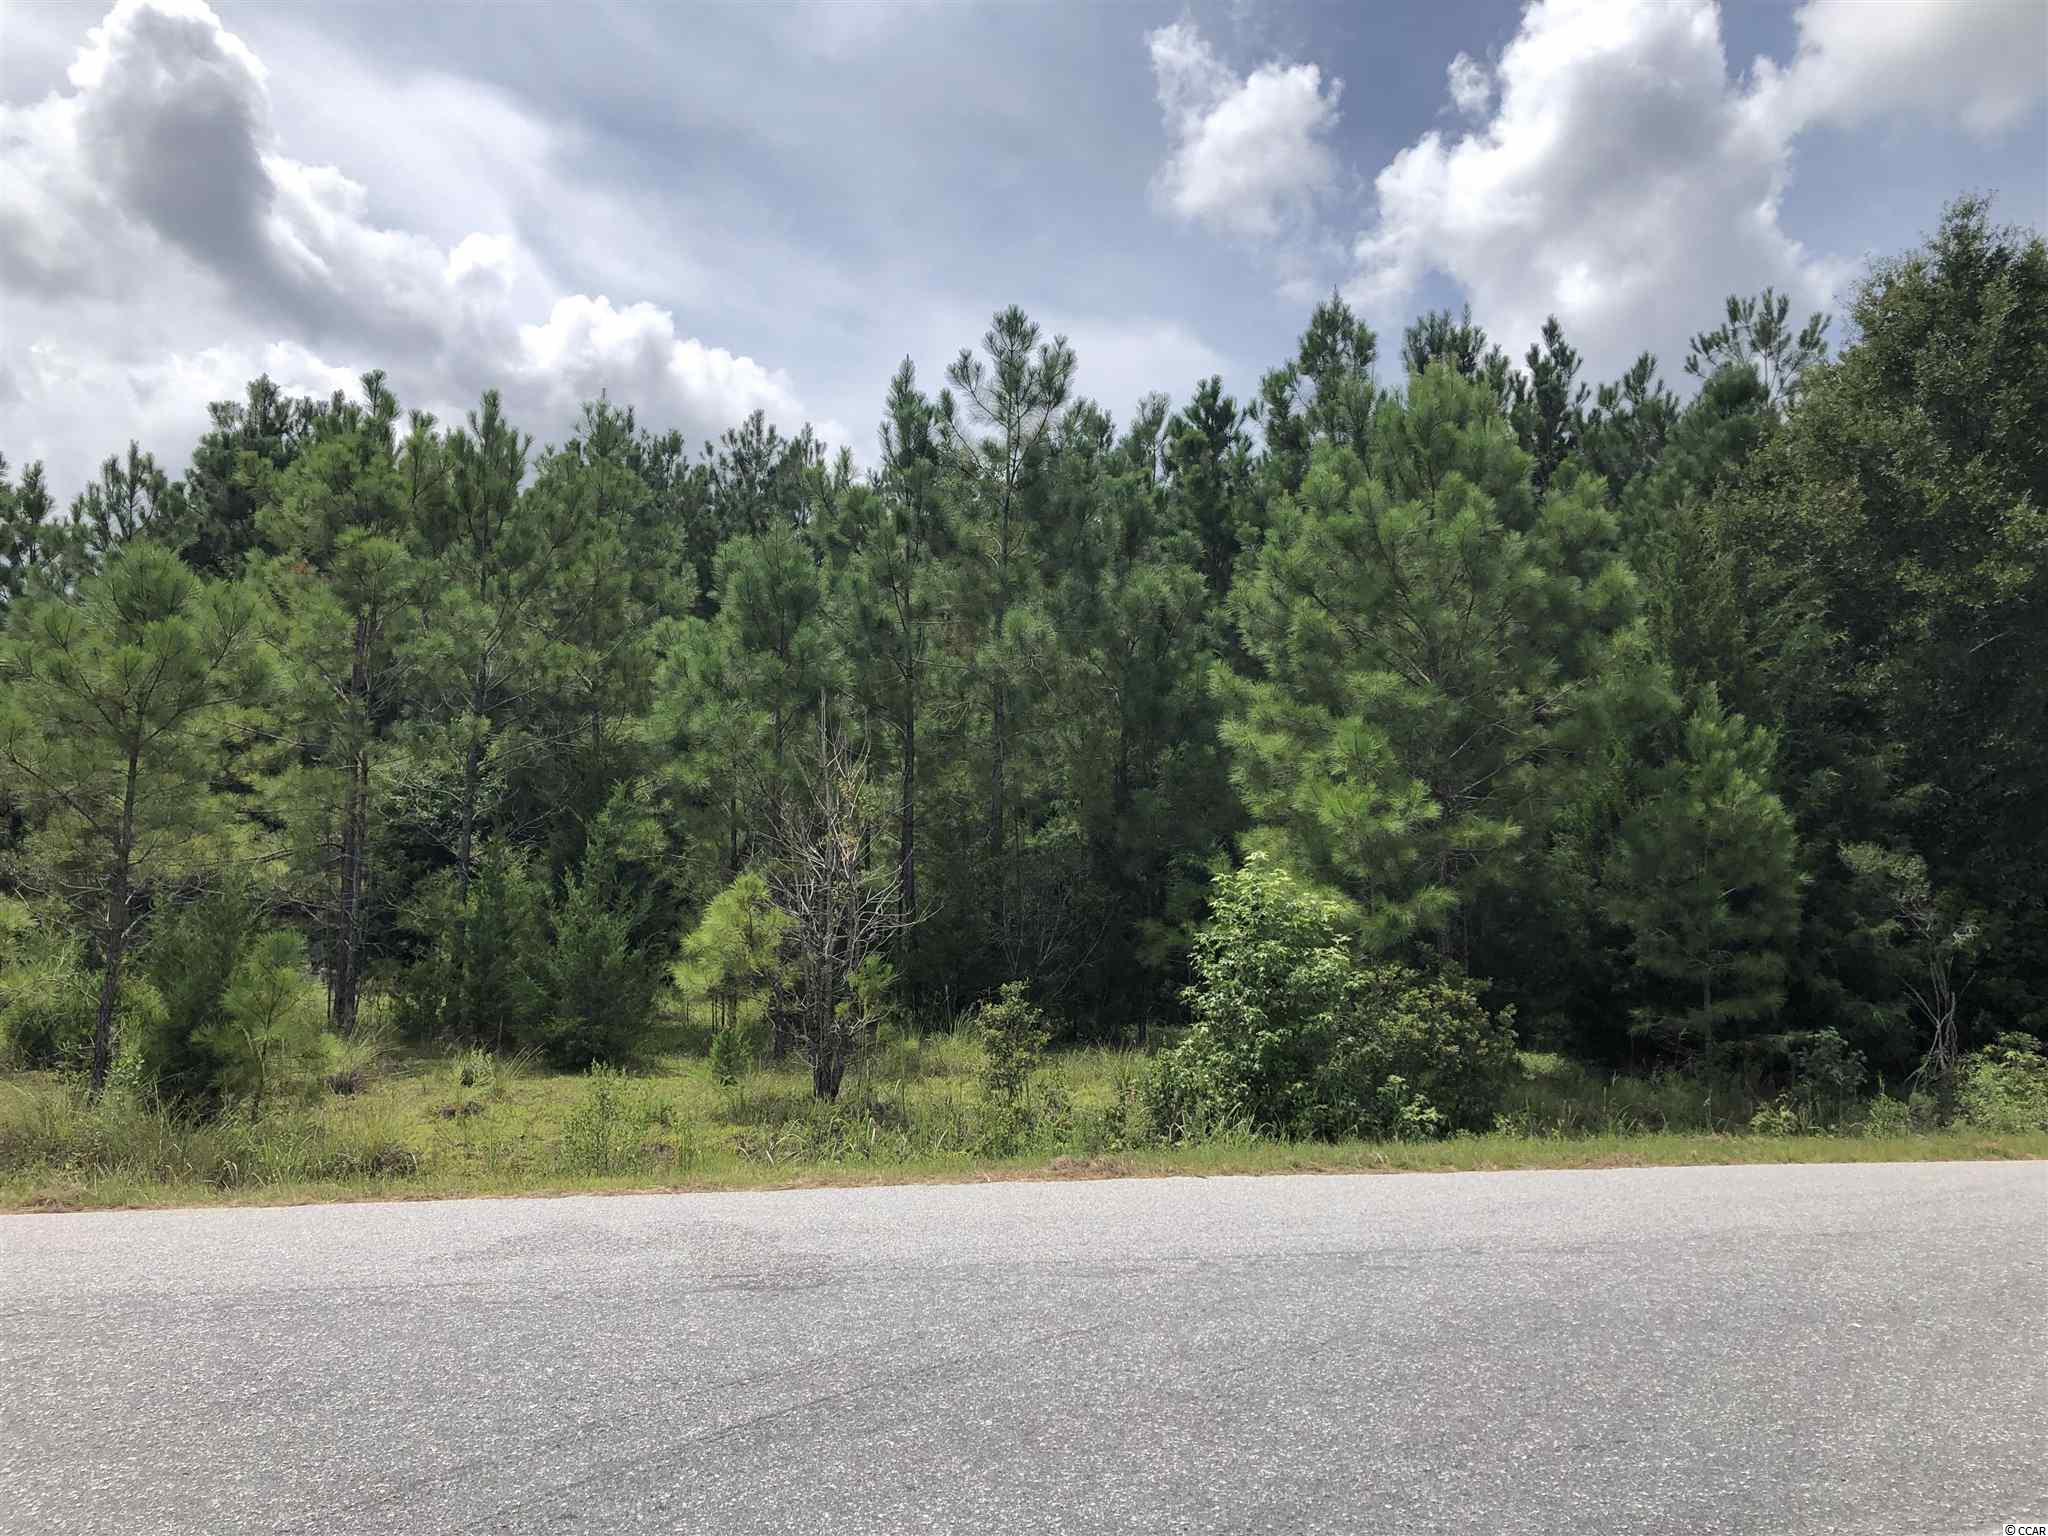 Fantastic Development opportunity in fast growing area of Georgetown County. Over 9 acres with Public Water/Sewer and over 650' of frontage on Windsor Road.